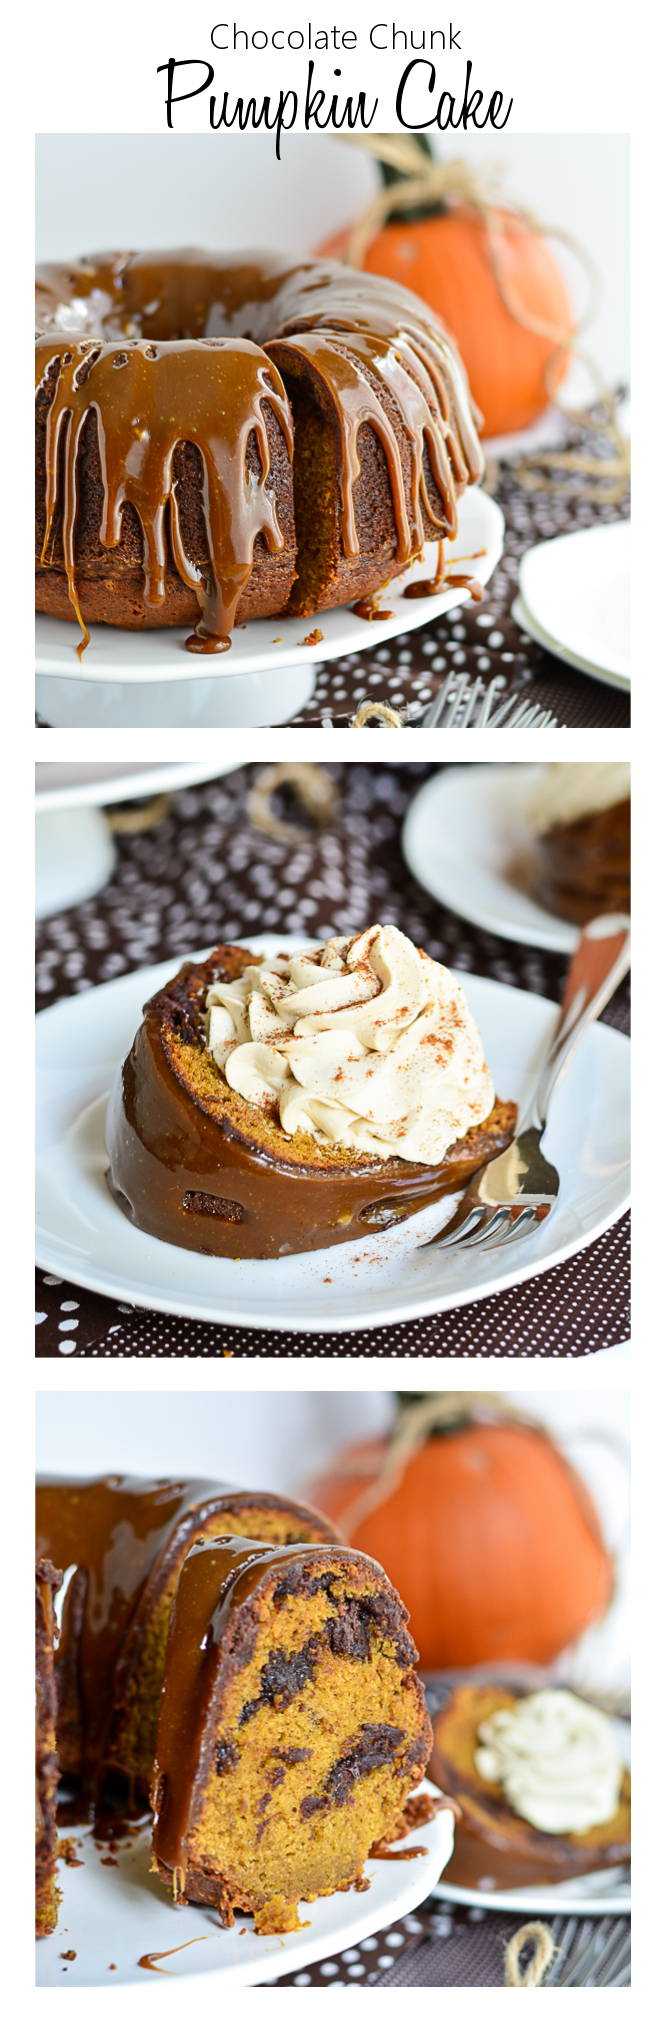 Chocolate Chunck Pumpkin Cake | Garnish and Glaze